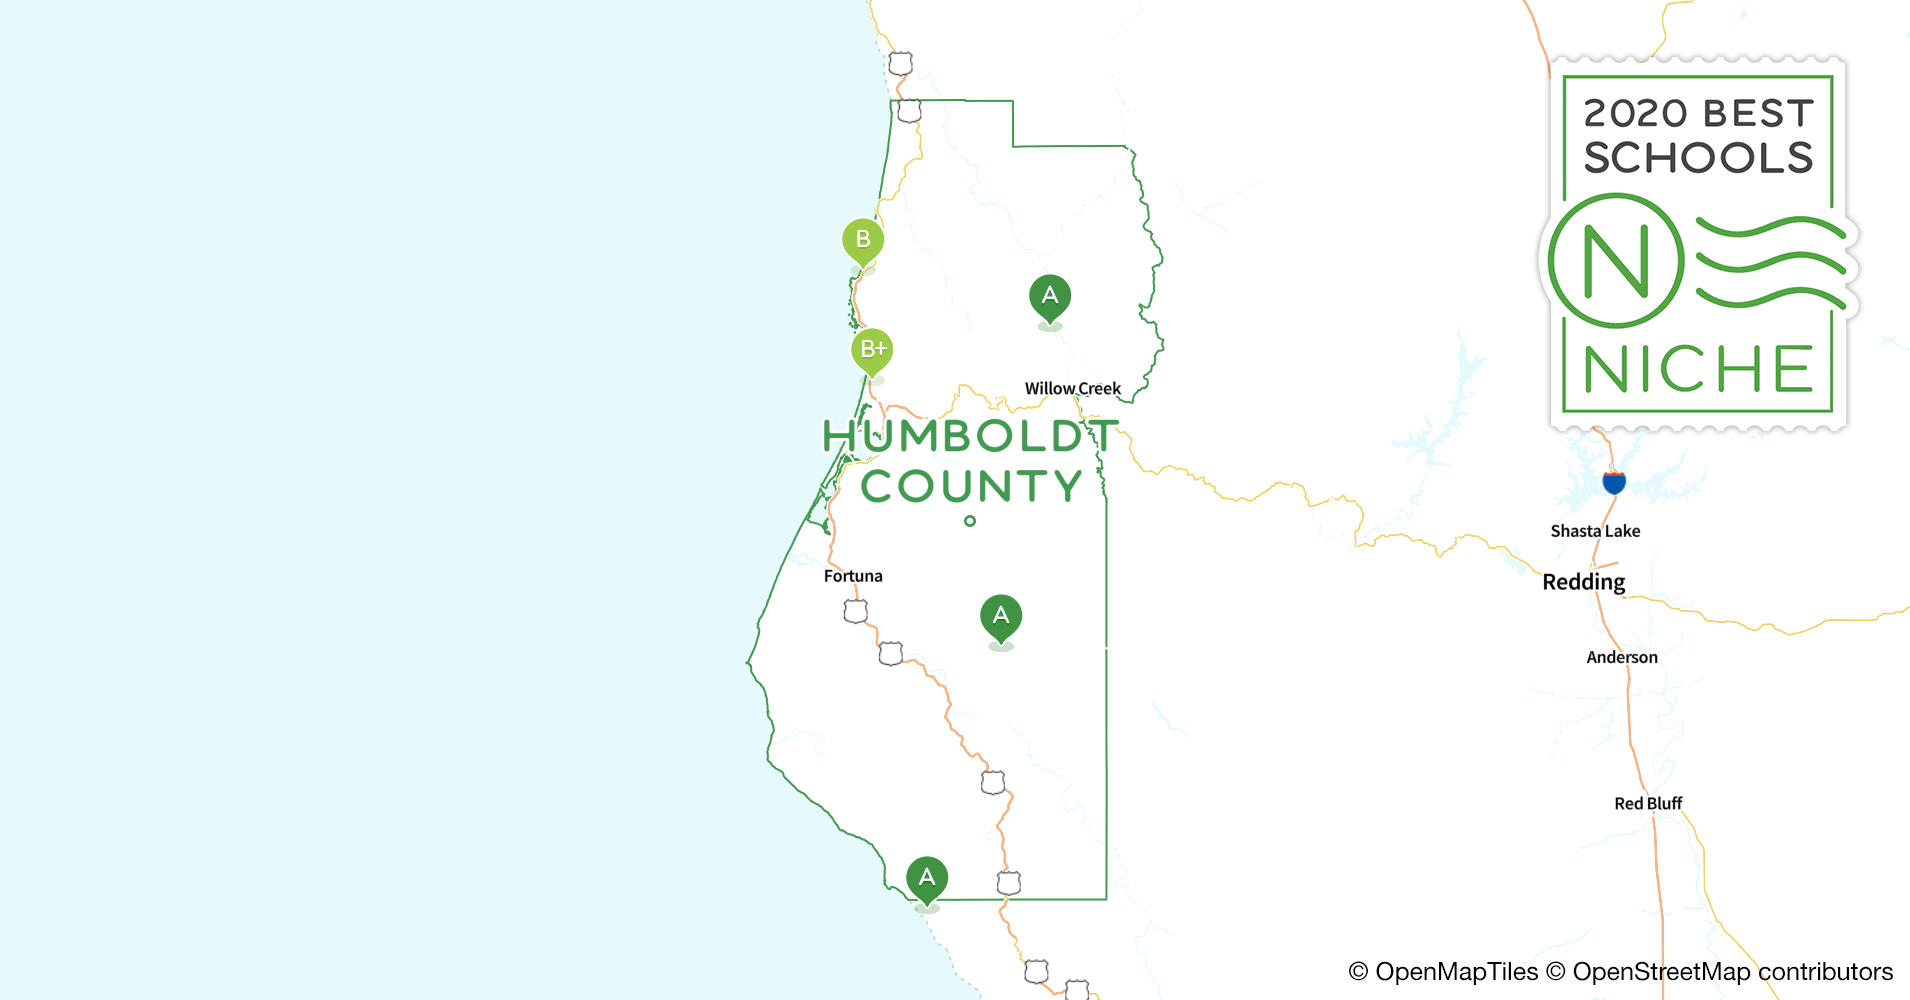 School Districts in Humboldt County, CA - Niche